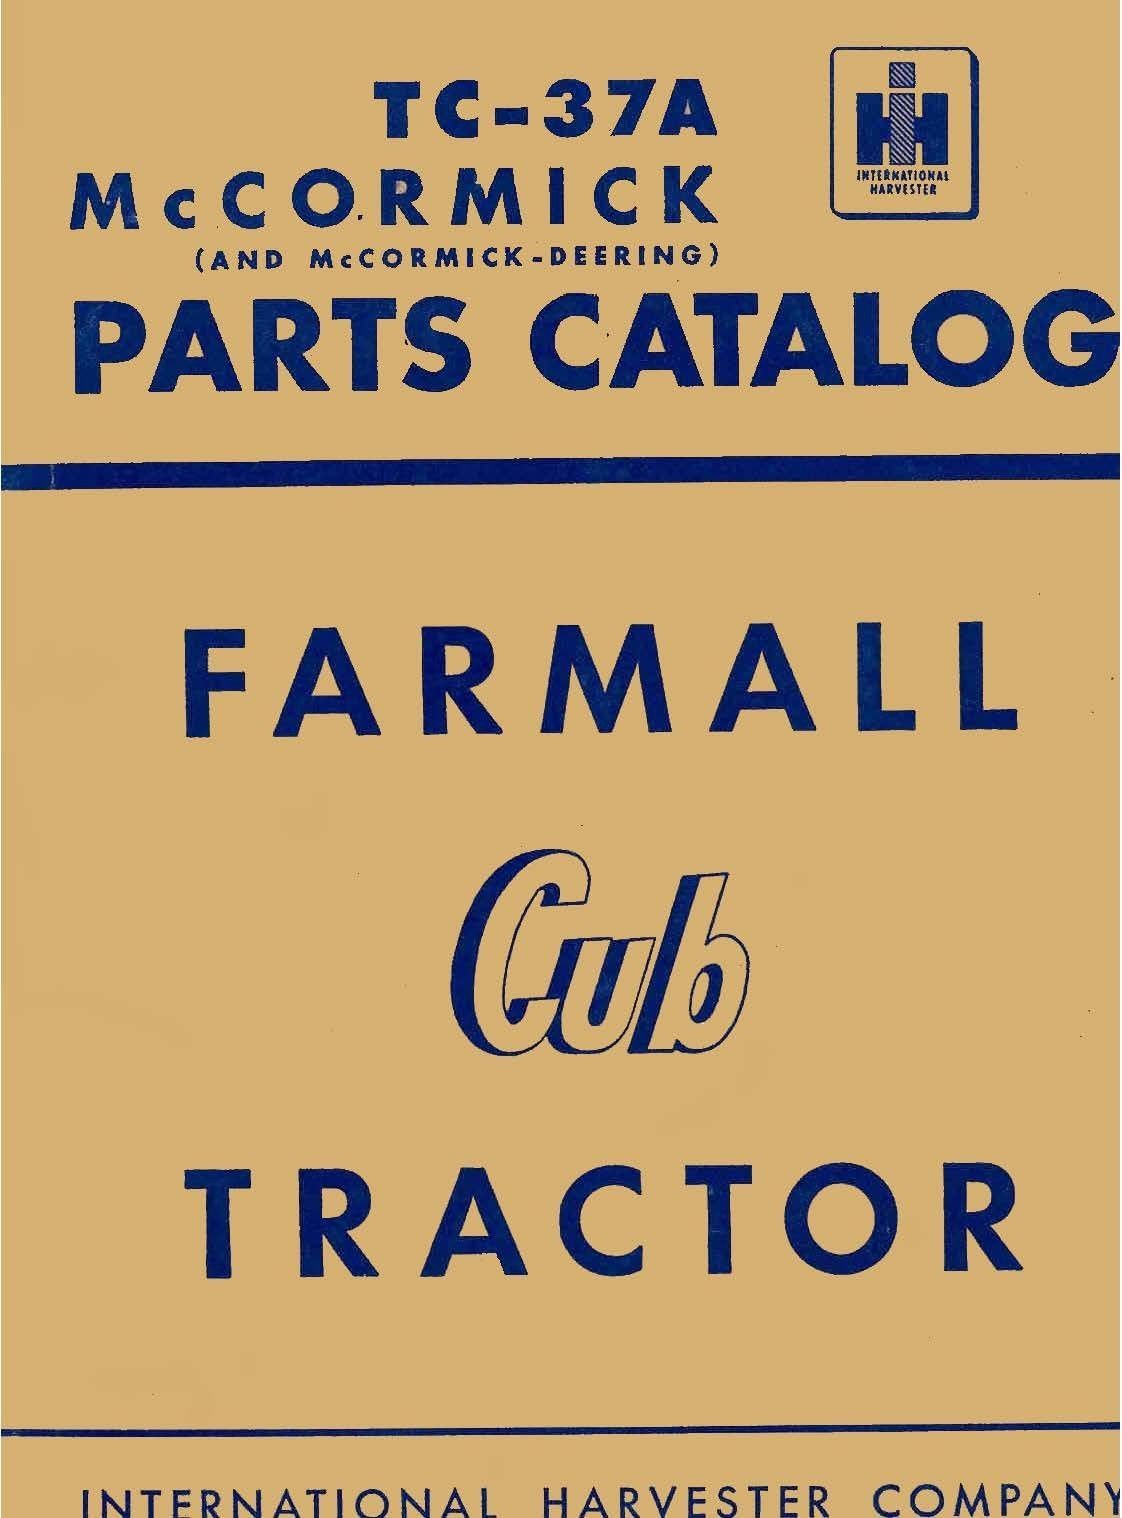 Farmall McCormick Cub Tractor Parts Catalog No. TC-37A